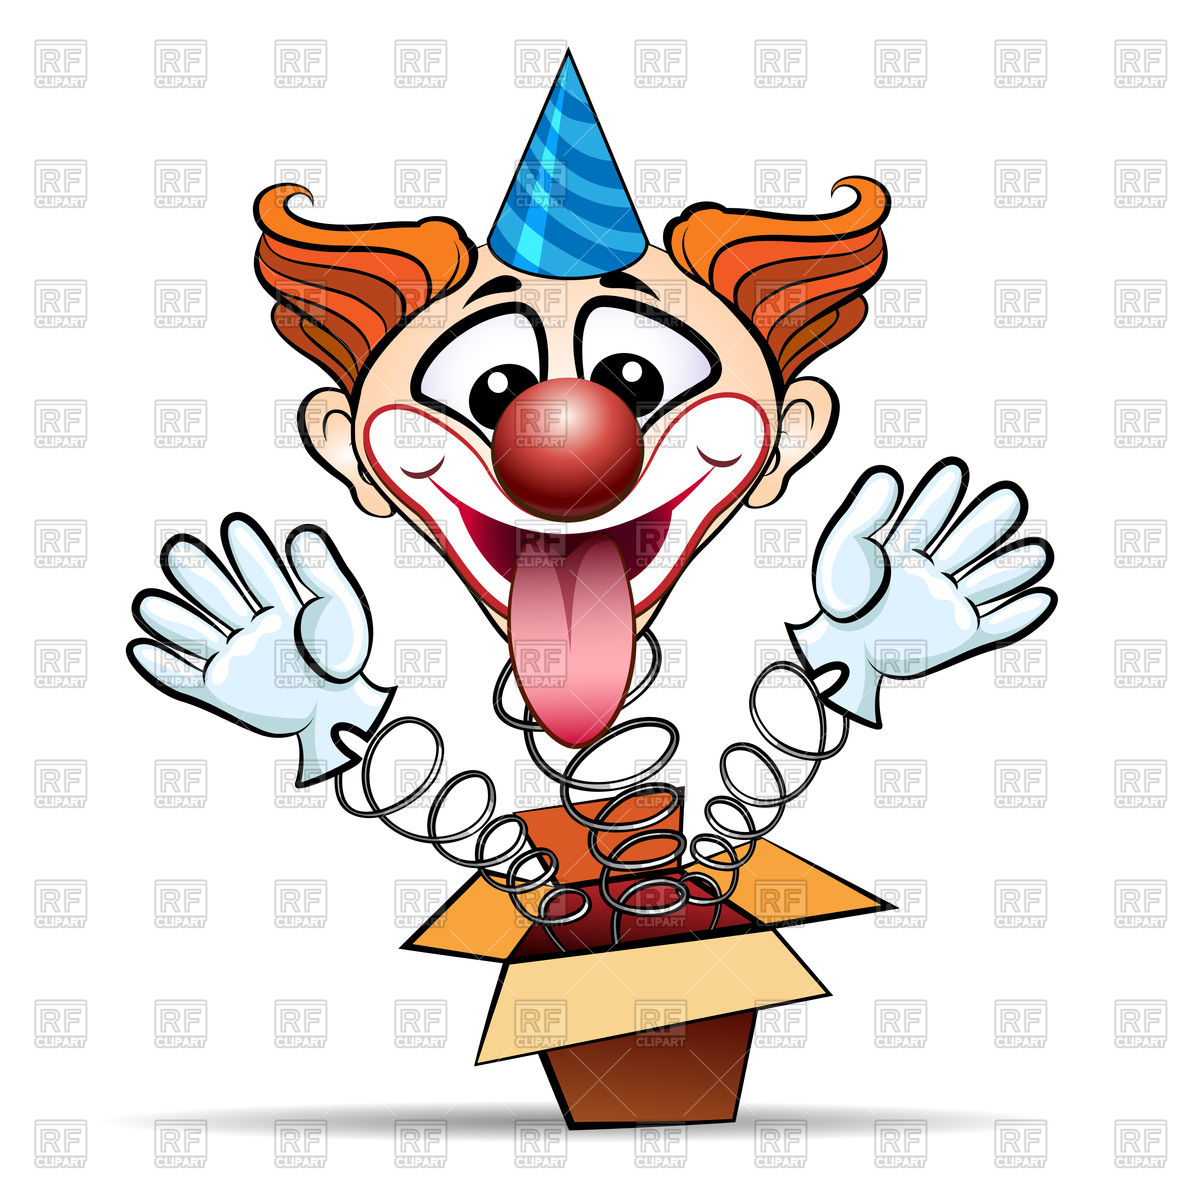 1200x1200 Funny Laugthing Clown Jumps Out Of Surprised Box Vector Image